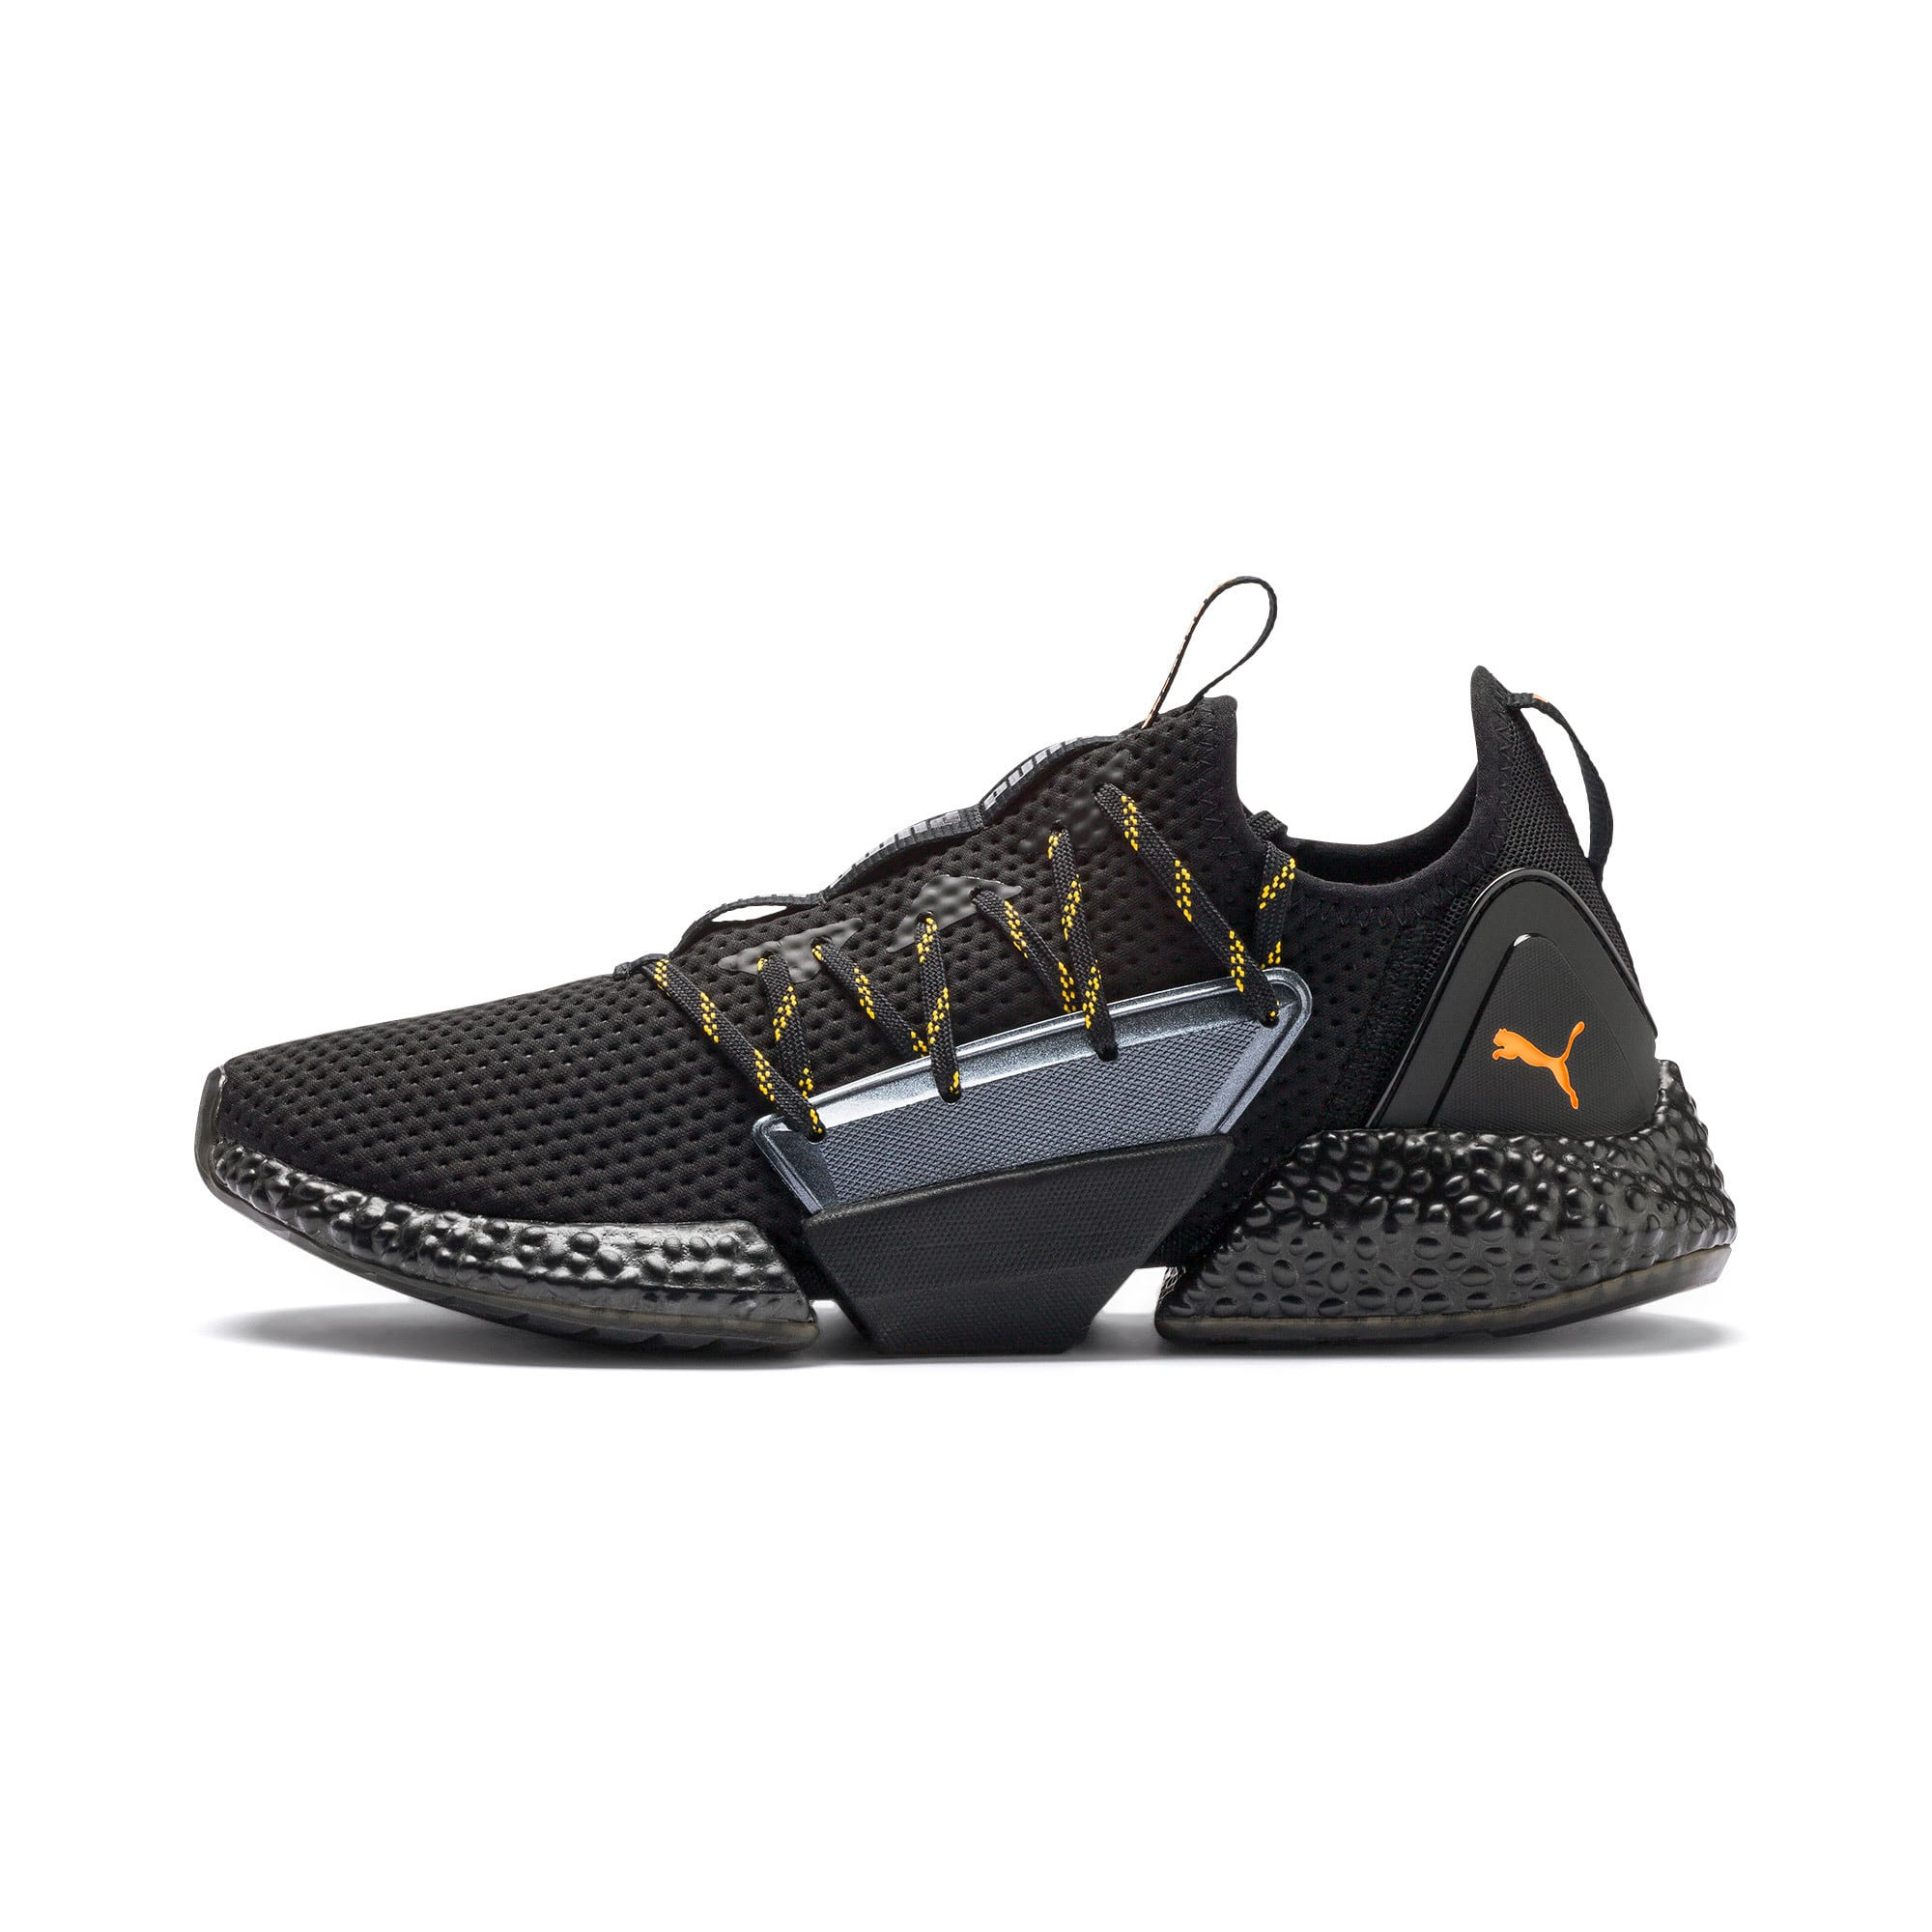 Thumbnail 1 of HYBRID Rocket Aero Men's Running Shoes, Puma Black-Puma Black, medium